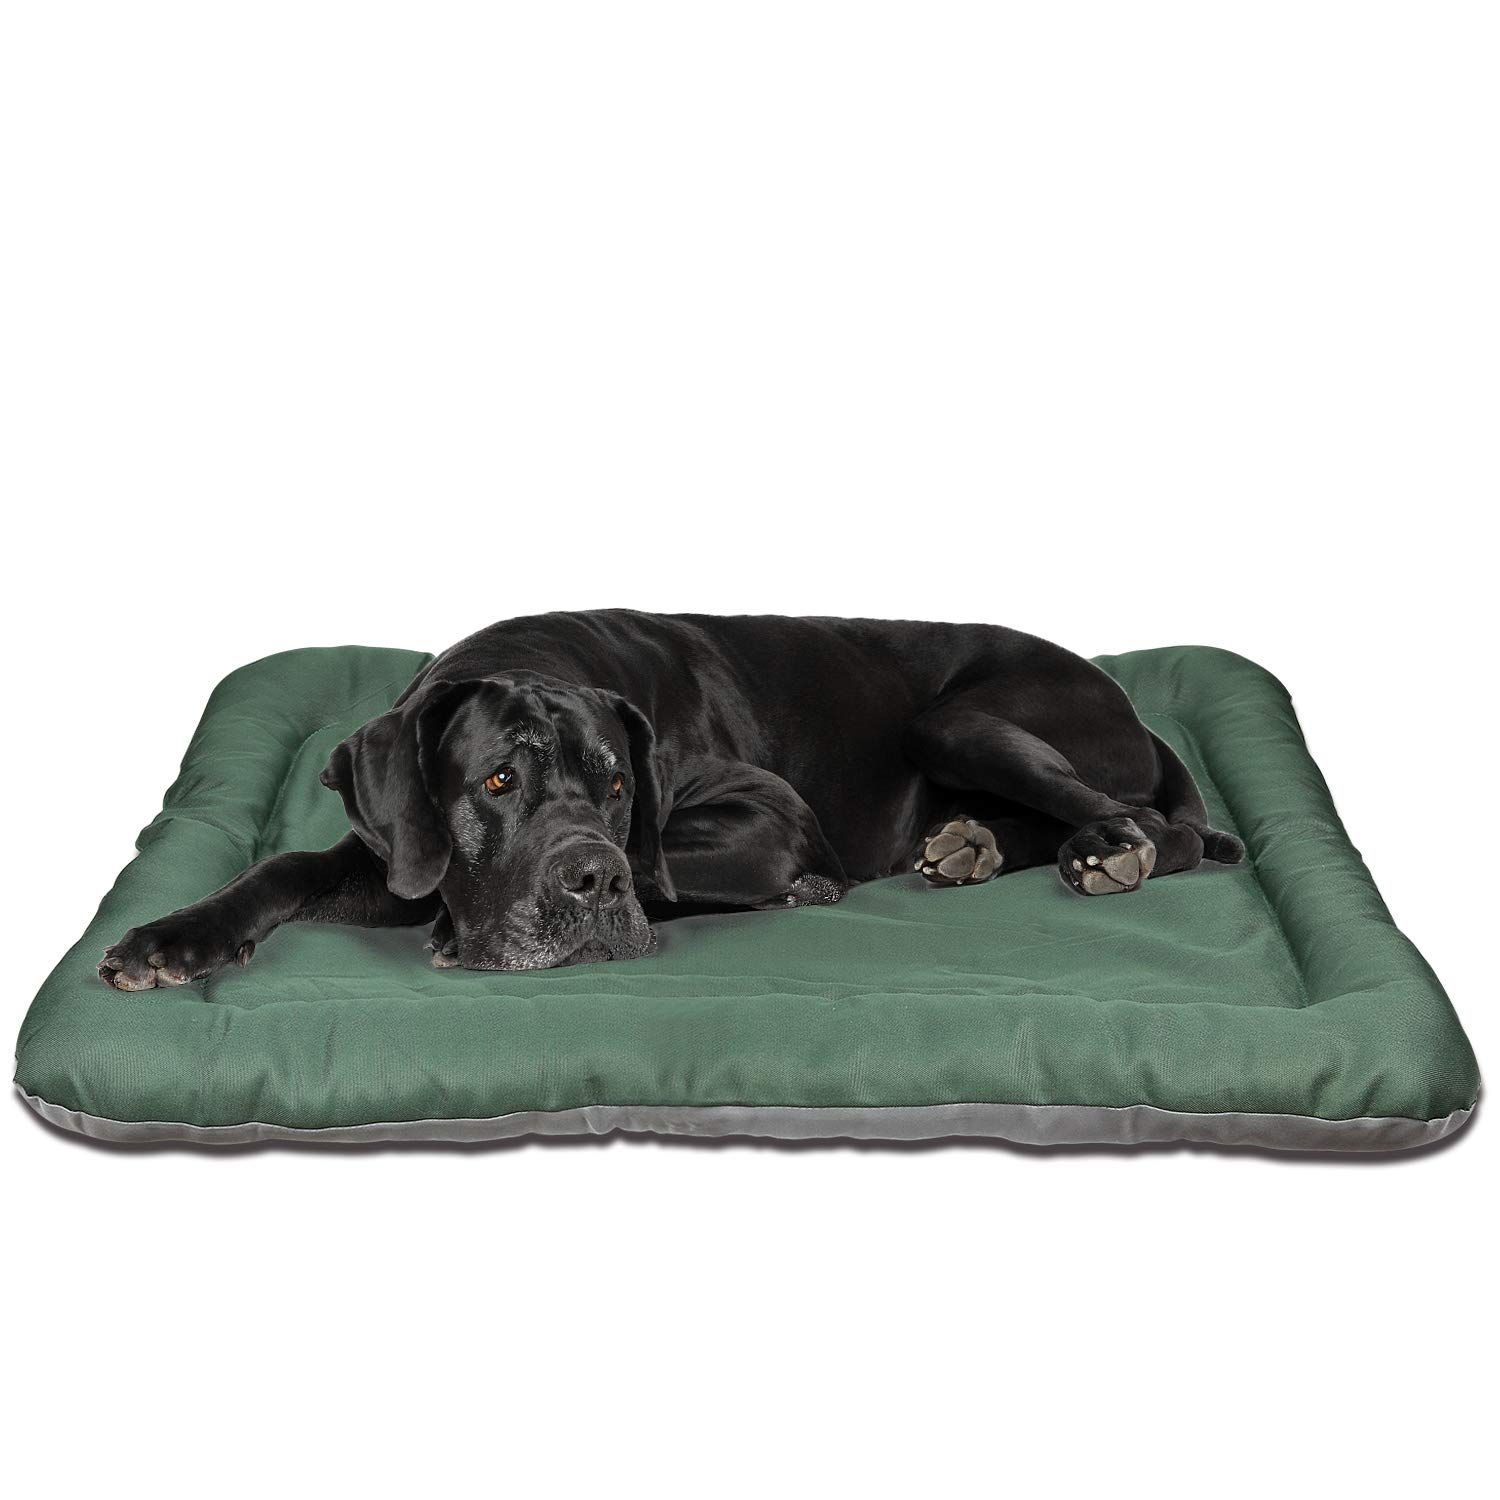 Yitesen Dog Bed Medium Crate Kennel Mat Dogs House 100 Washable